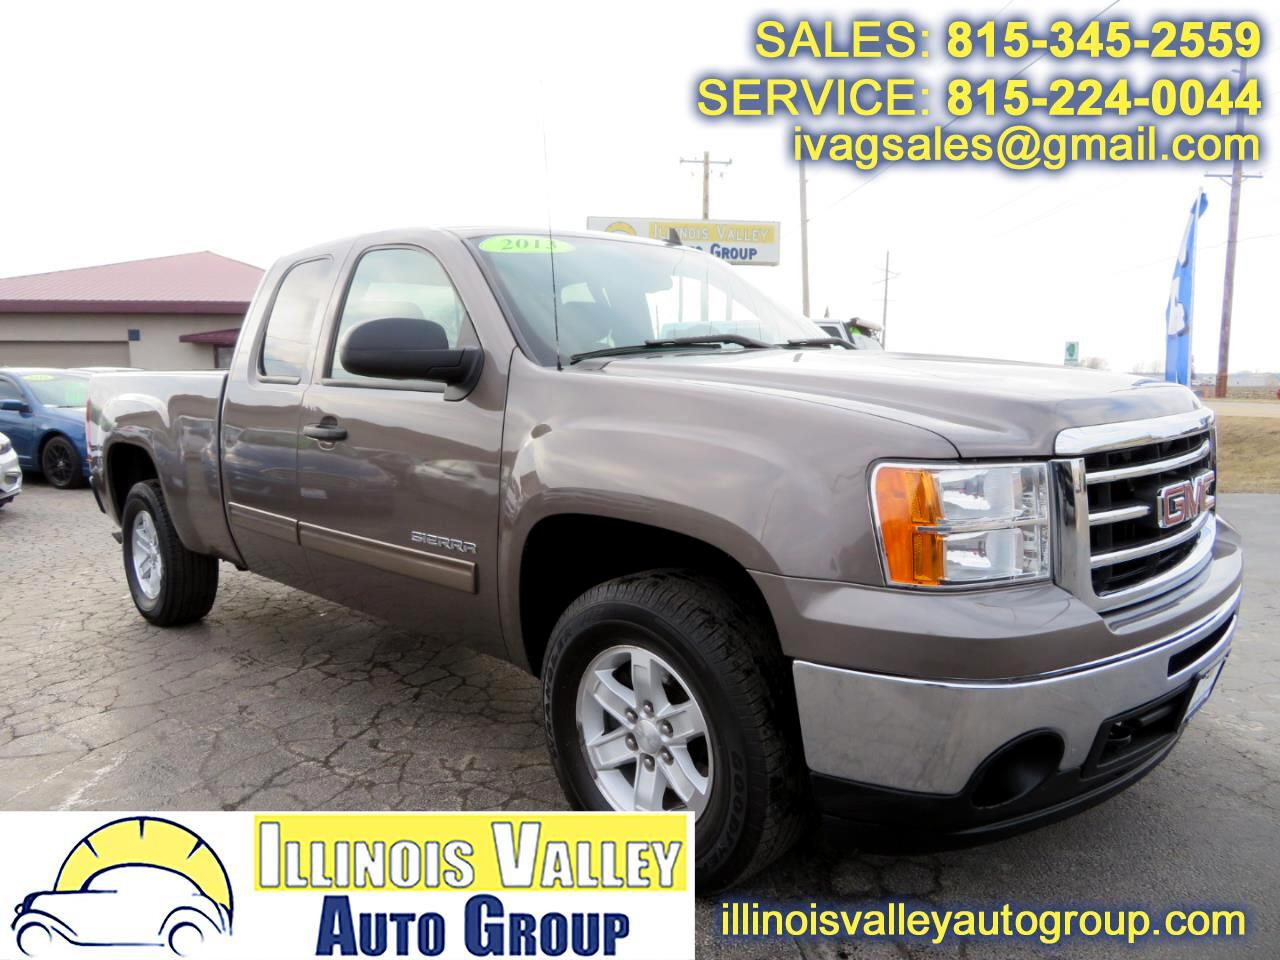 2013 GMC Sierra 1500 SLE Extended Cab Short Bed 4WD